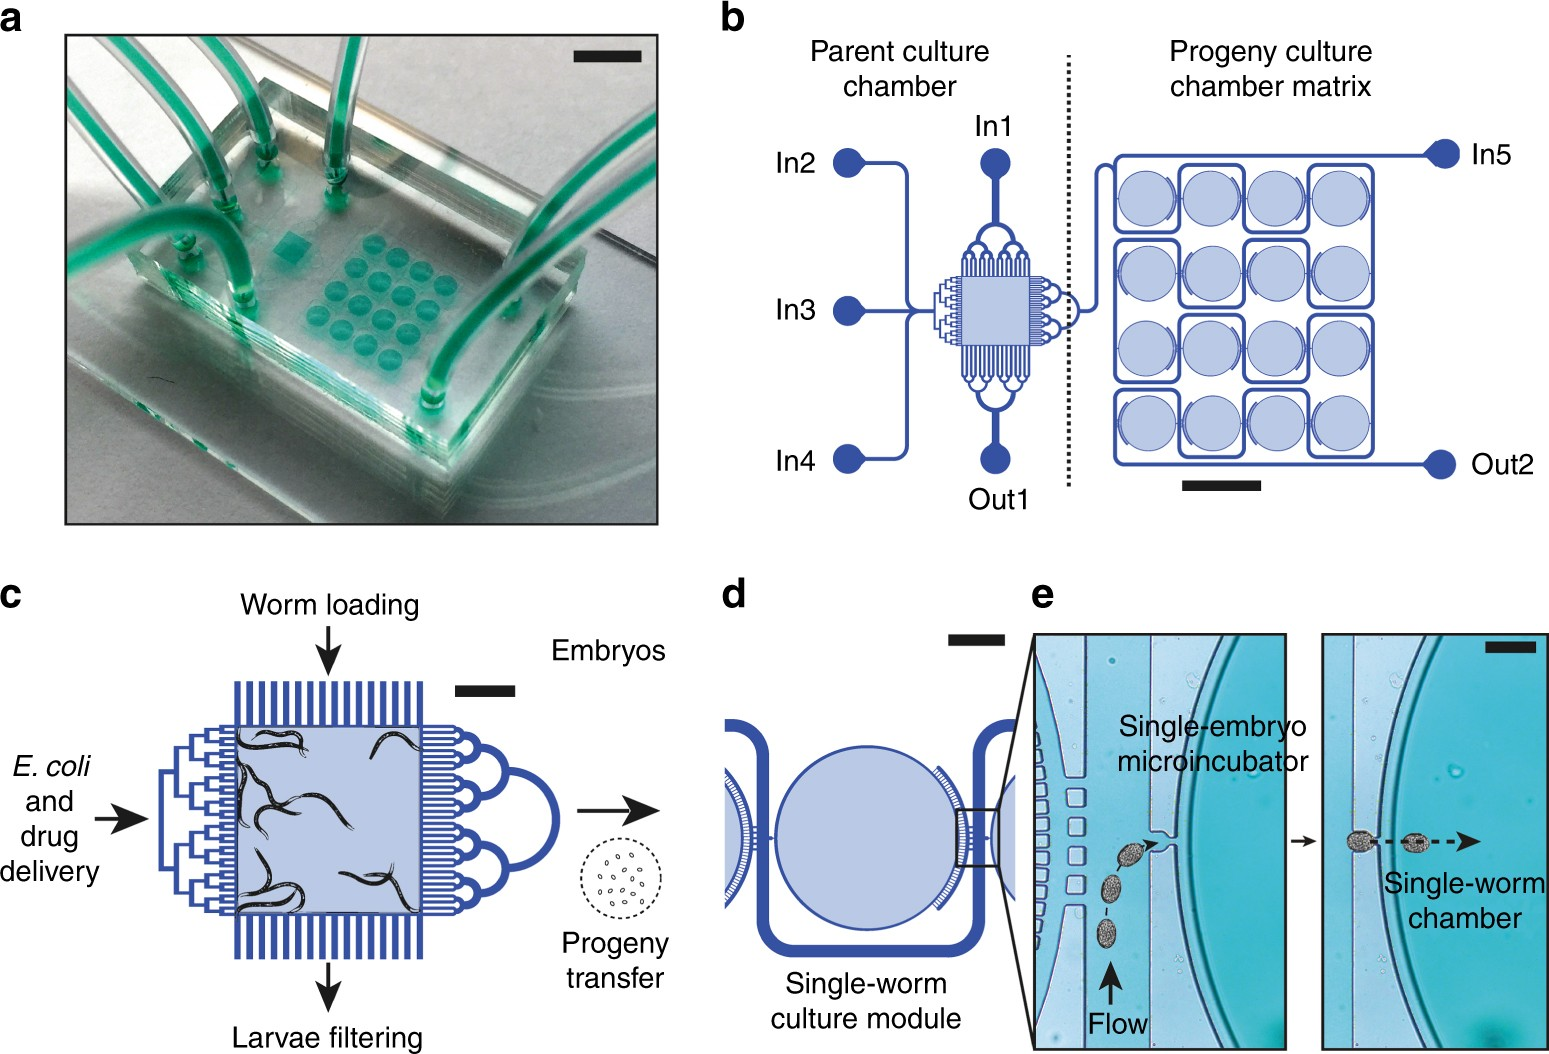 Microfluidics Enabled Phenotyping Of A Whole Population C S Sbr Process Flow Diagram Elegans Worms Over Their Embryonic And Post Development At Single Organism